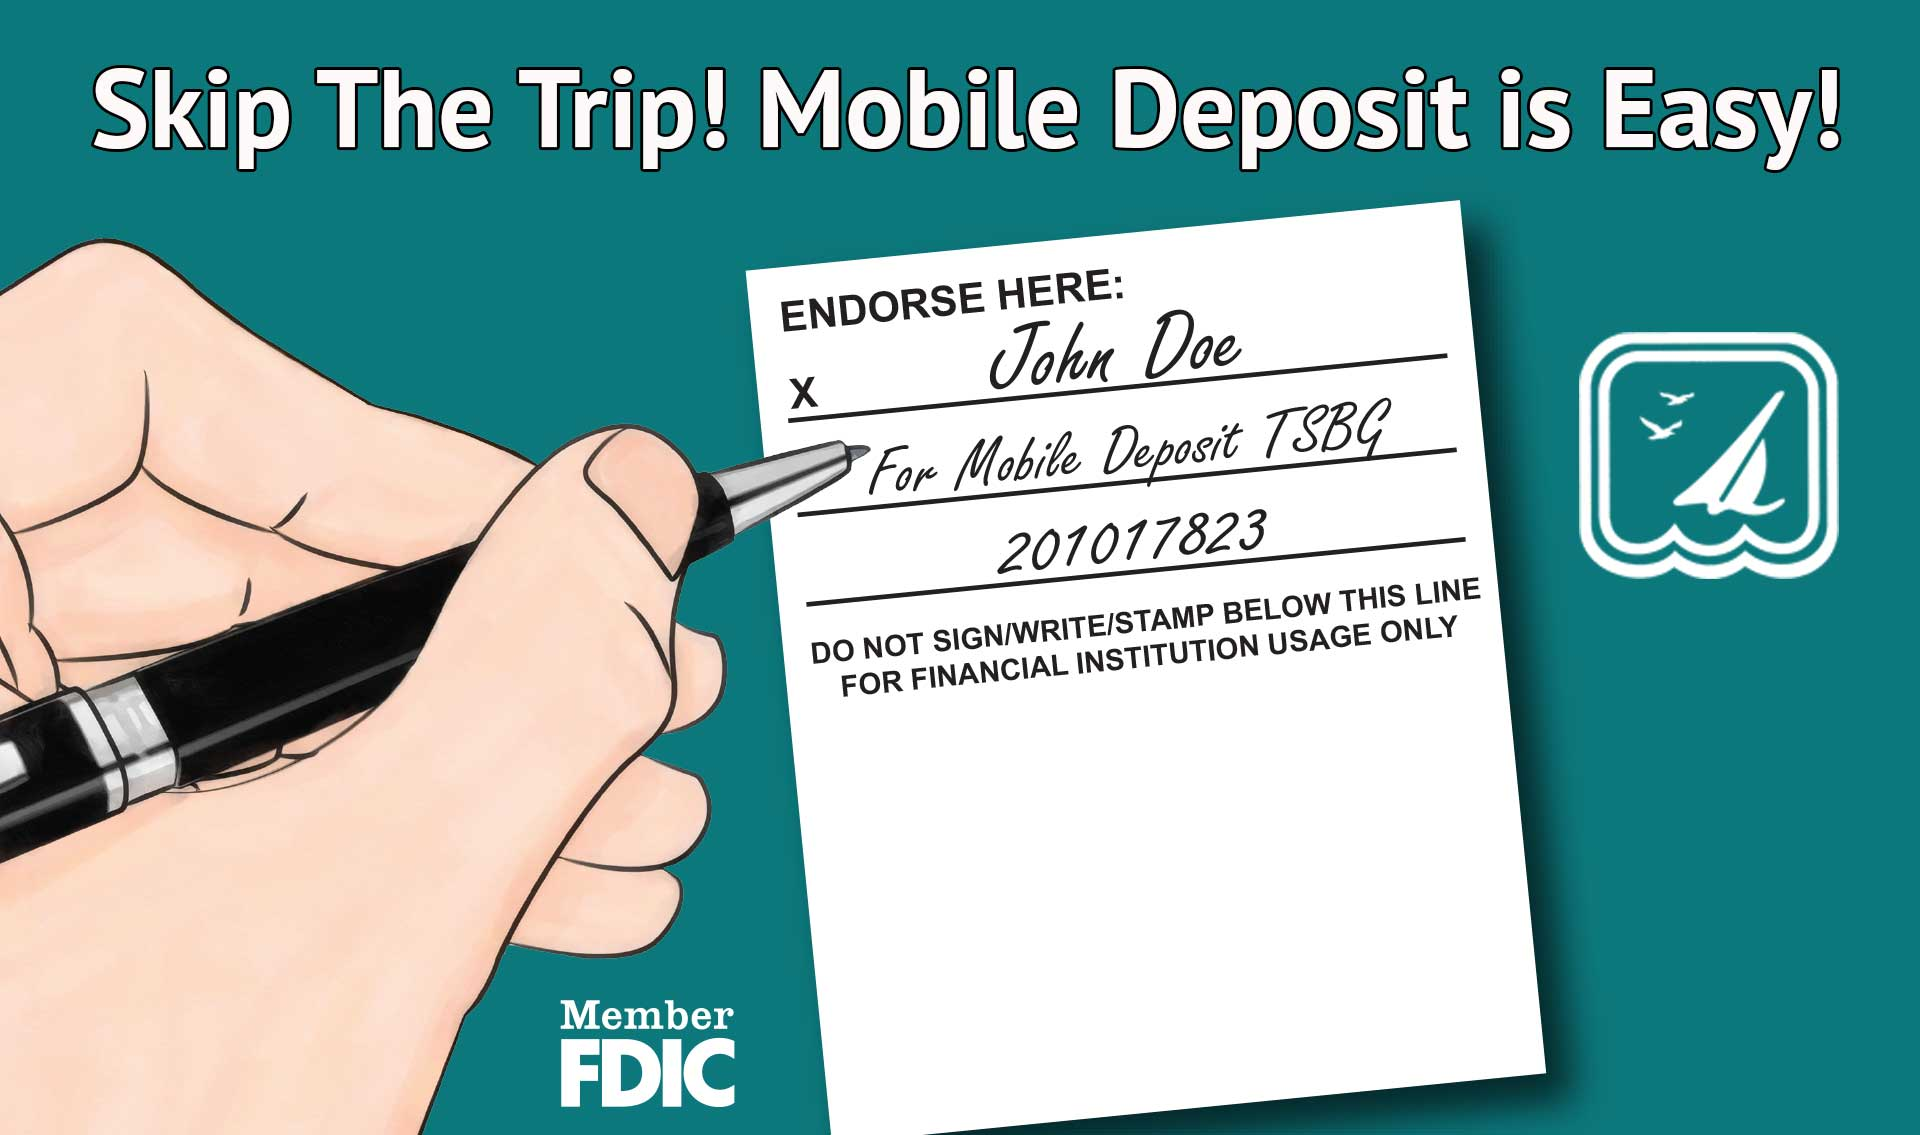 Get Mobible Deposit with our Banking App